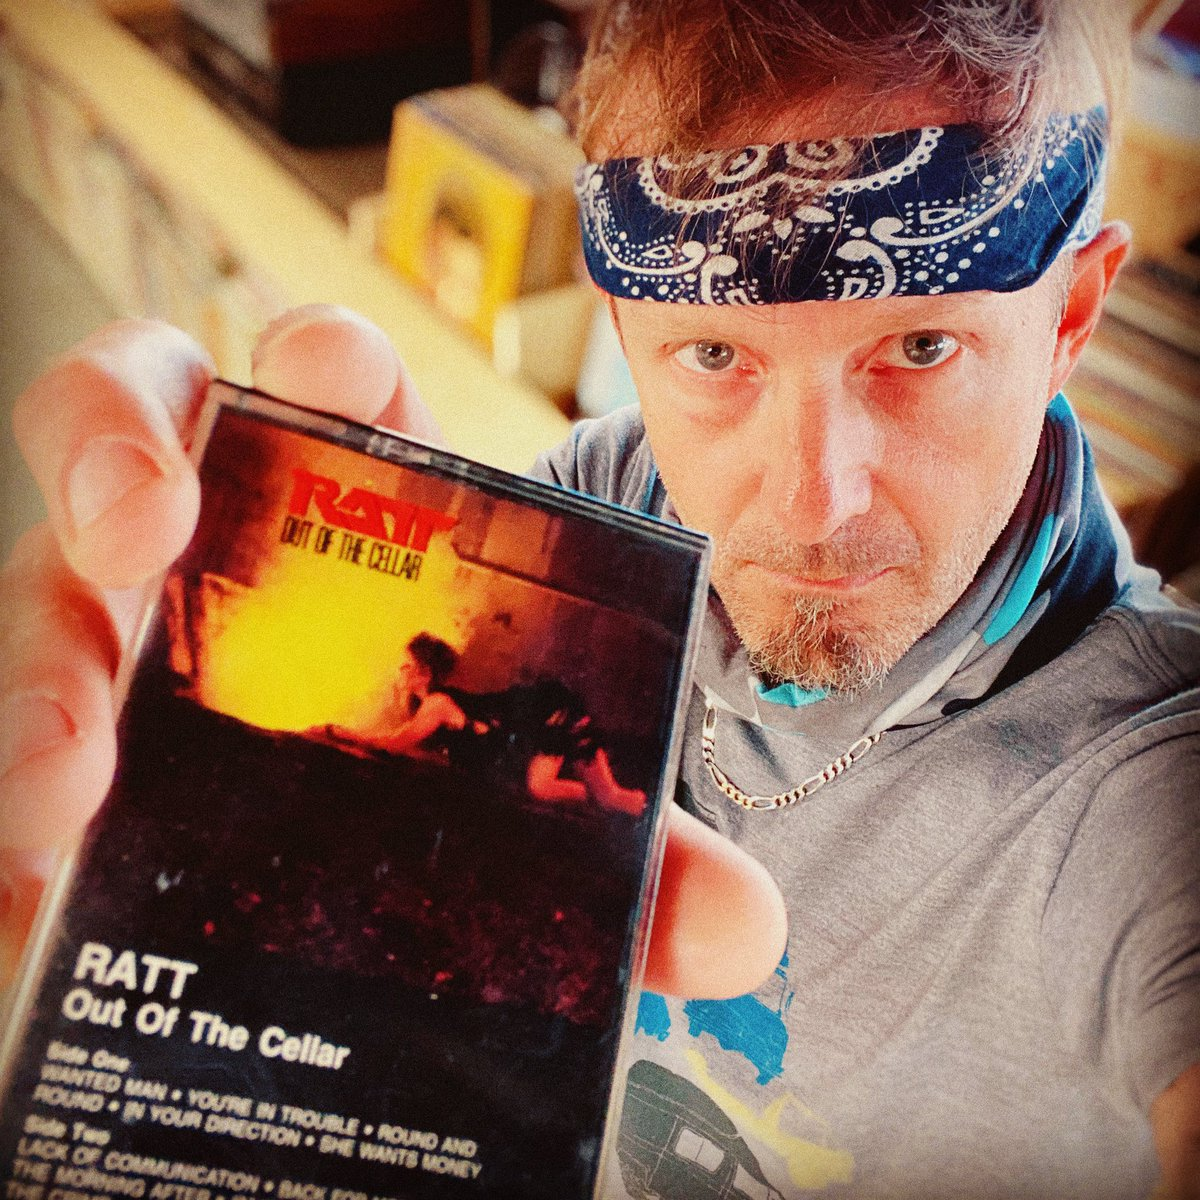 If you don't like Ratt, we can't be friends. @ratt #cassette #recordstore pic.twitter.com/h4jnh6QoCI